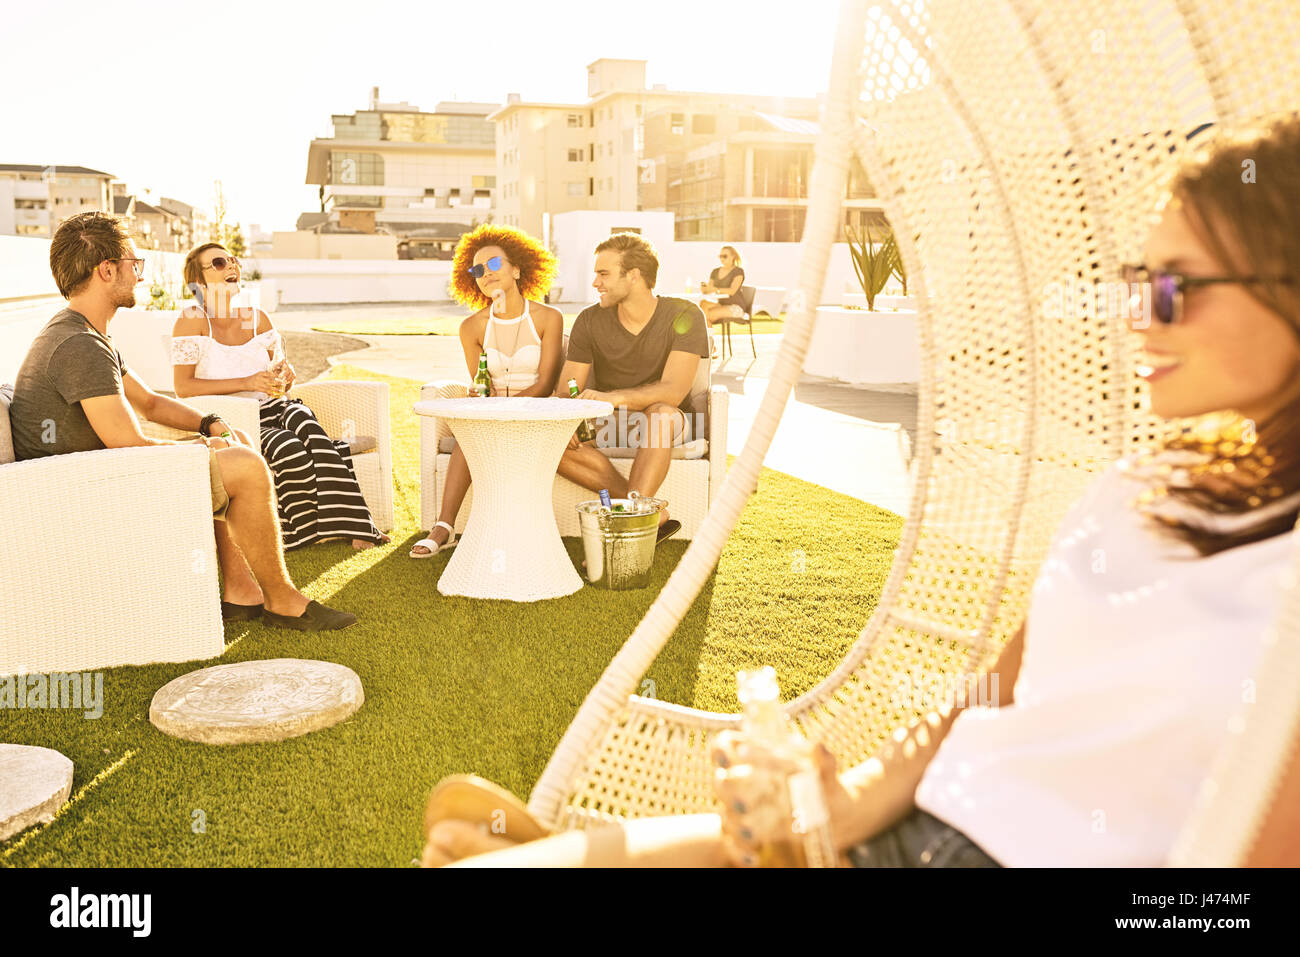 Beautiful young adults socialising together outdoors on an urban rooftop - Stock Image